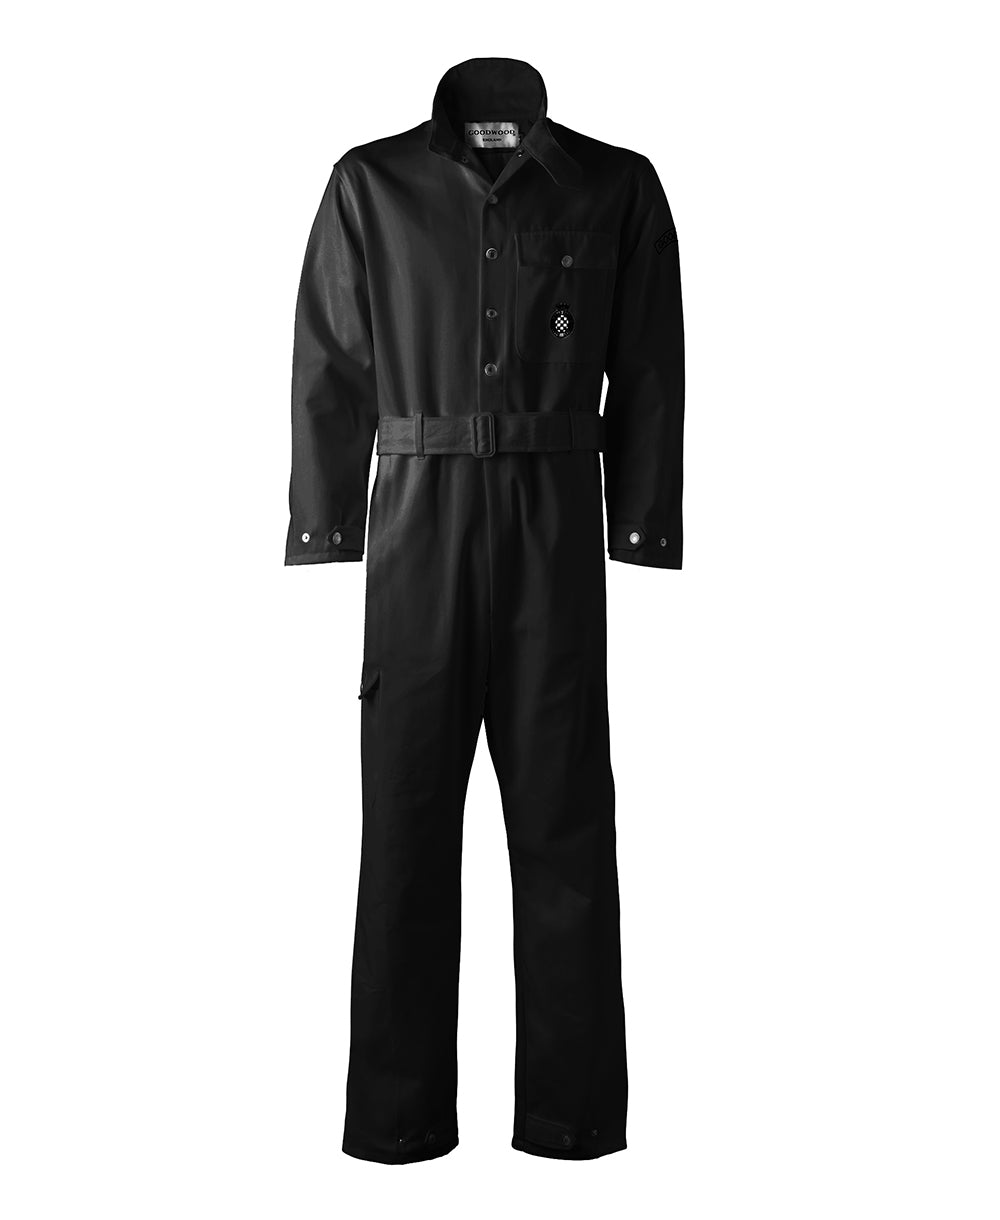 Goodwood Black Cotton Unisex Grrc Overalls